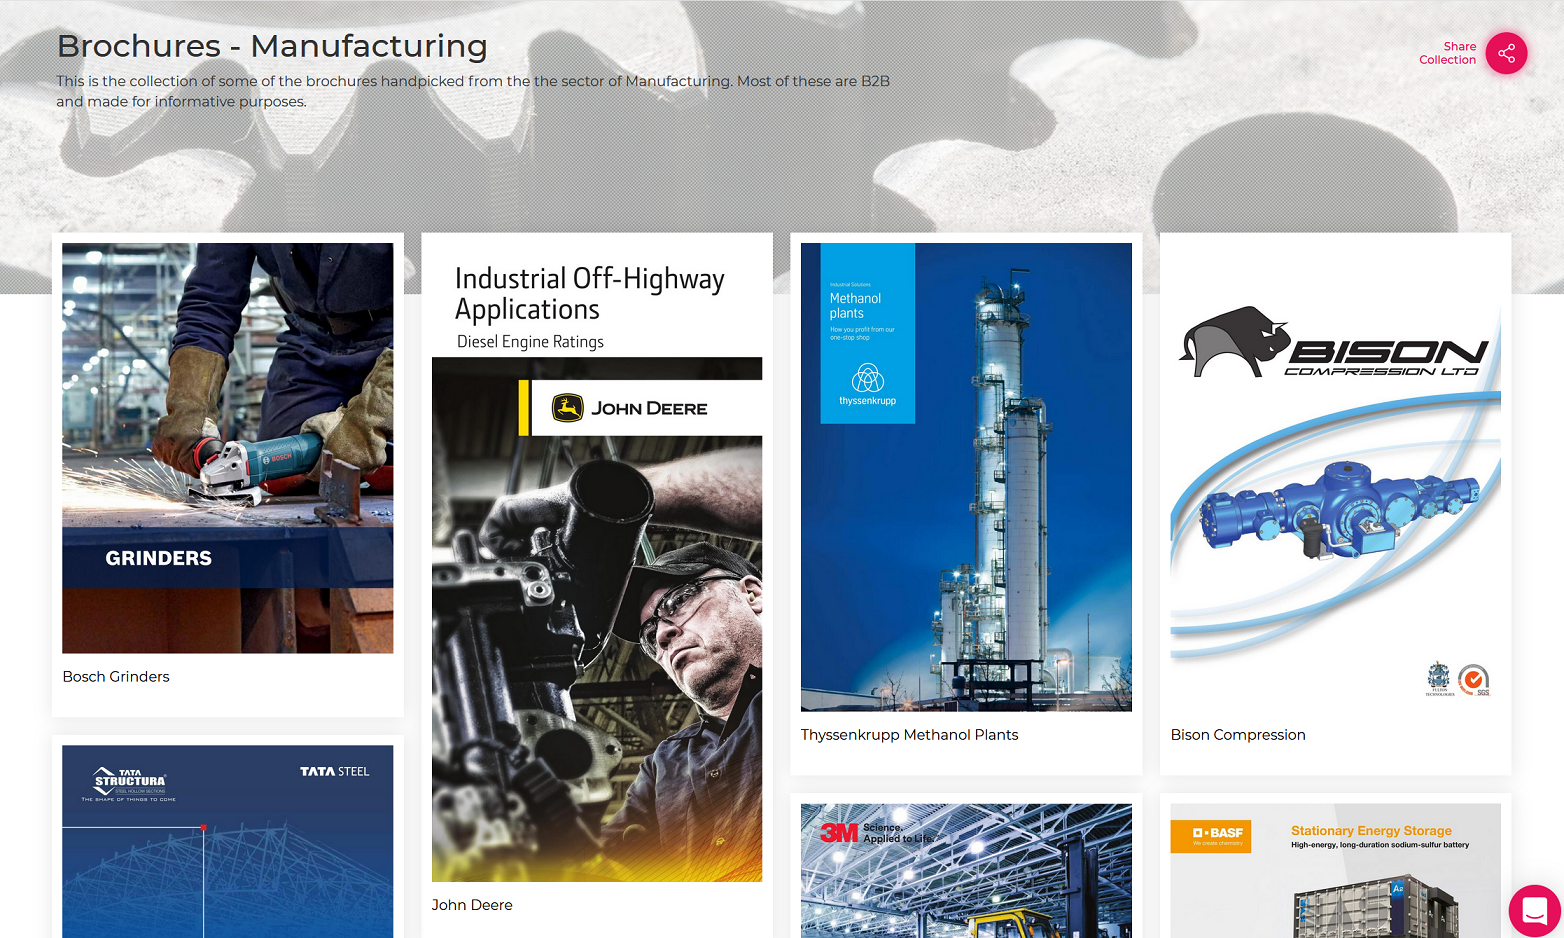 Brochures-Manufacturing Sector